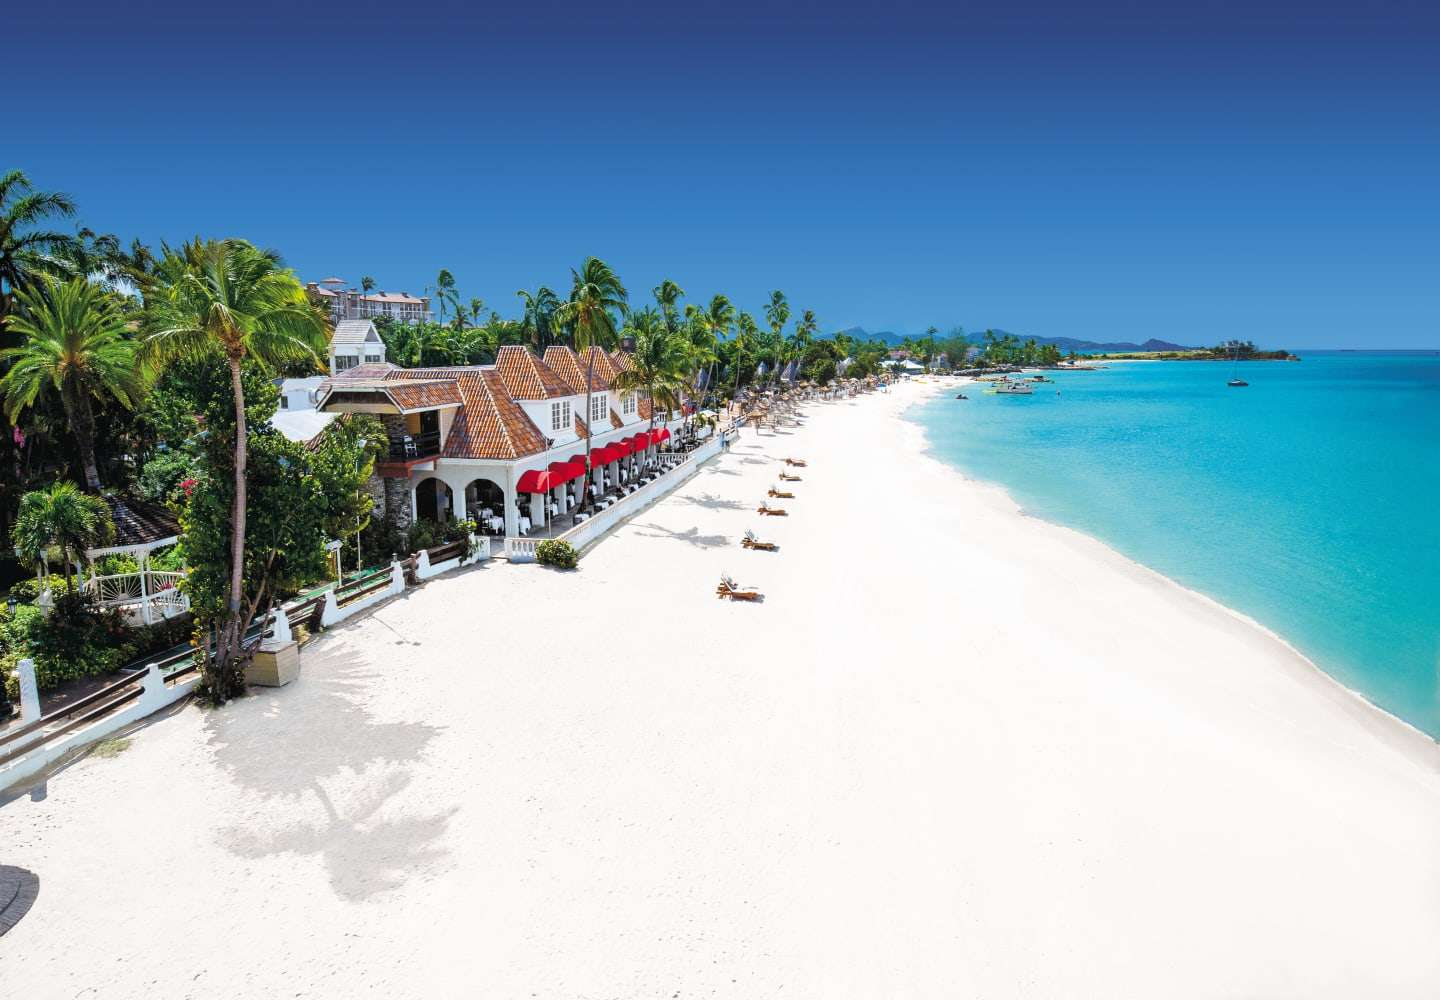 eb85eb6665a5a Sandals Grande Antigua Resort   Spa